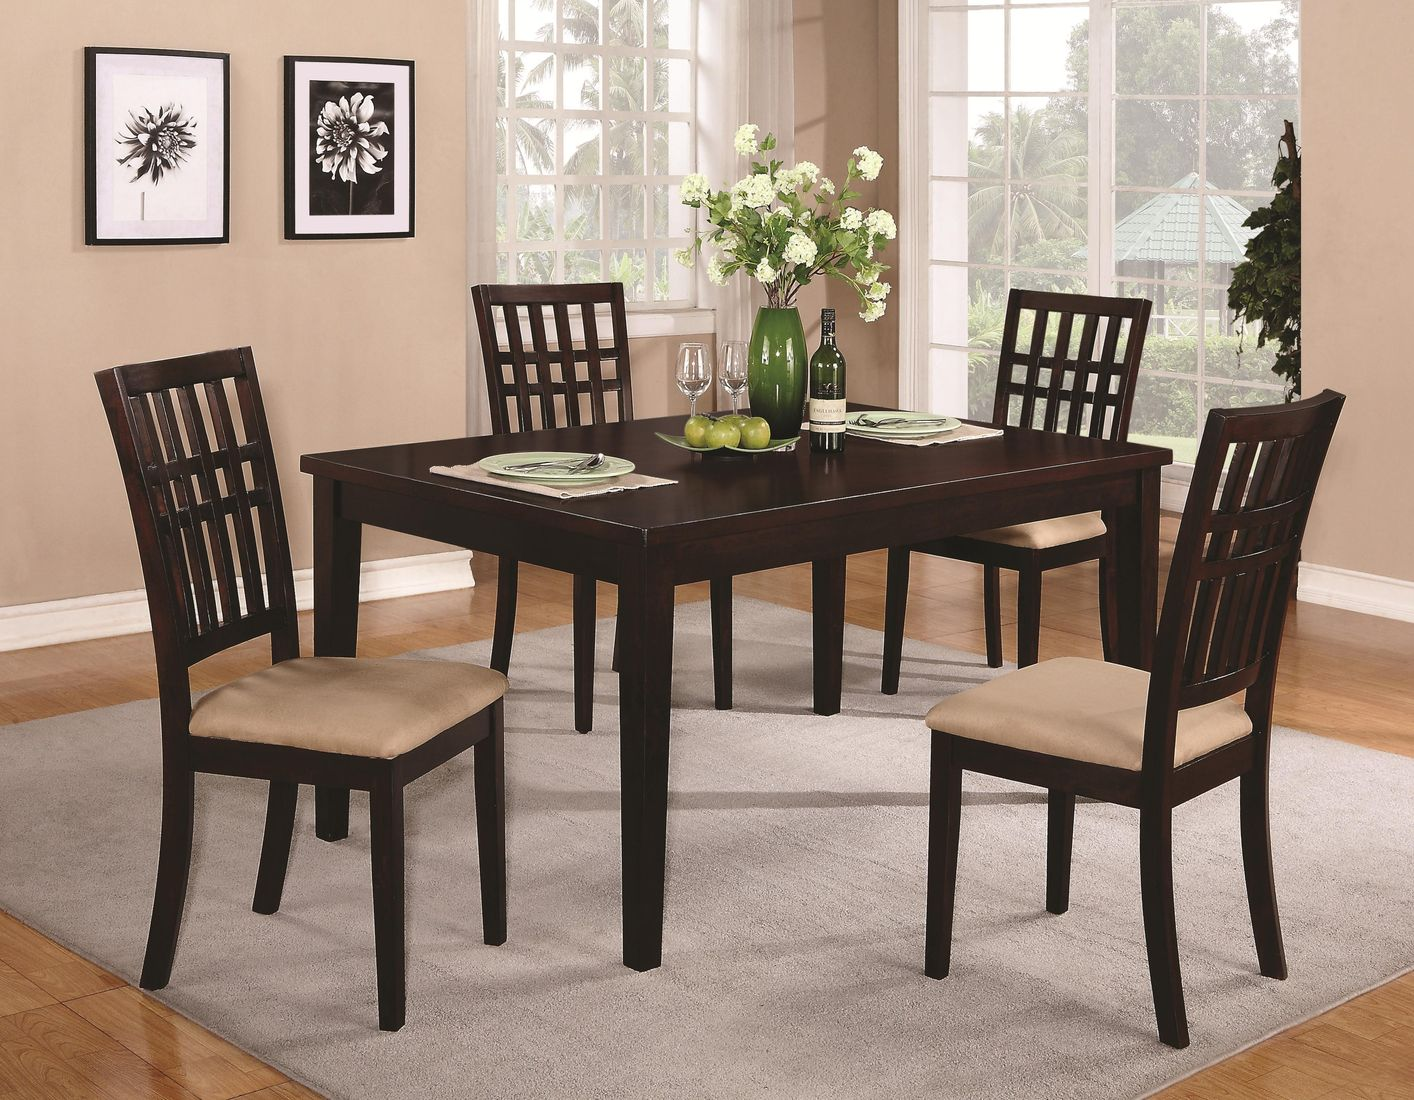 Dark Wood Dining Room Chairs innovative wooden dining table chairs chair wooden chairs for dining table wood uotsh Brandt Dark Cherry Wood Dining Table